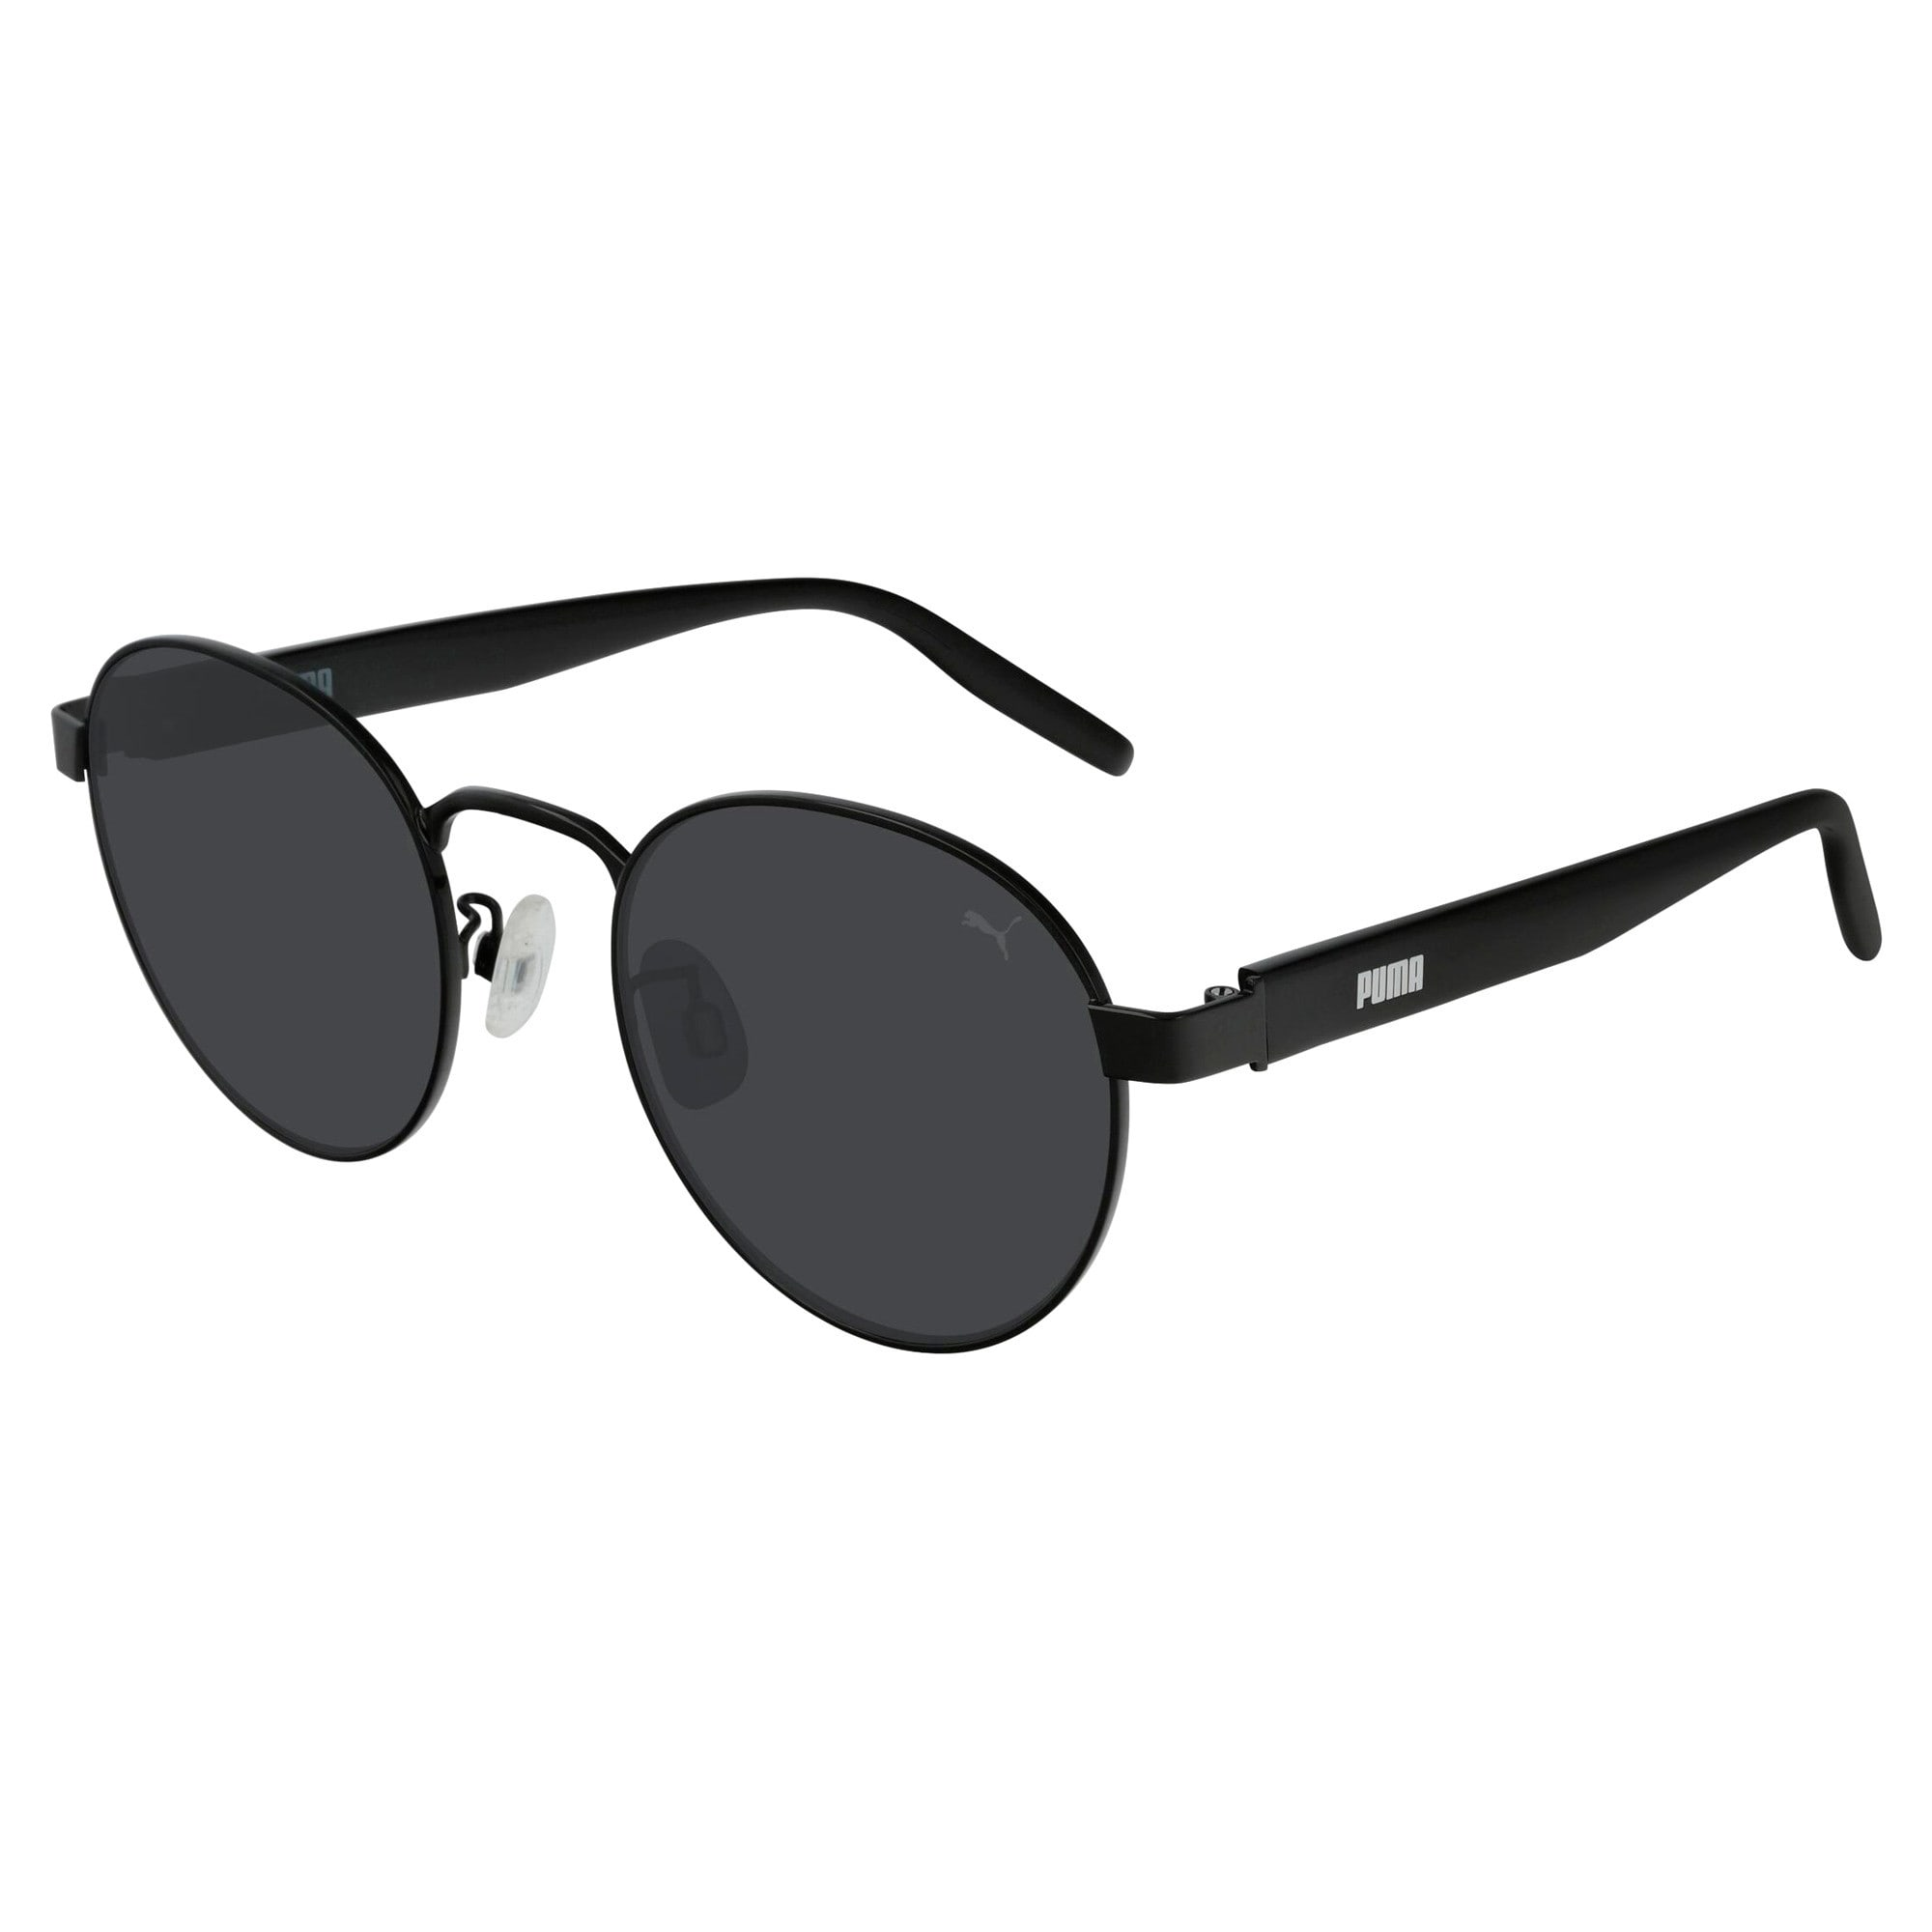 Thumbnail 1 of Sunglasses, BLACK-BLACK-SMOKE, medium